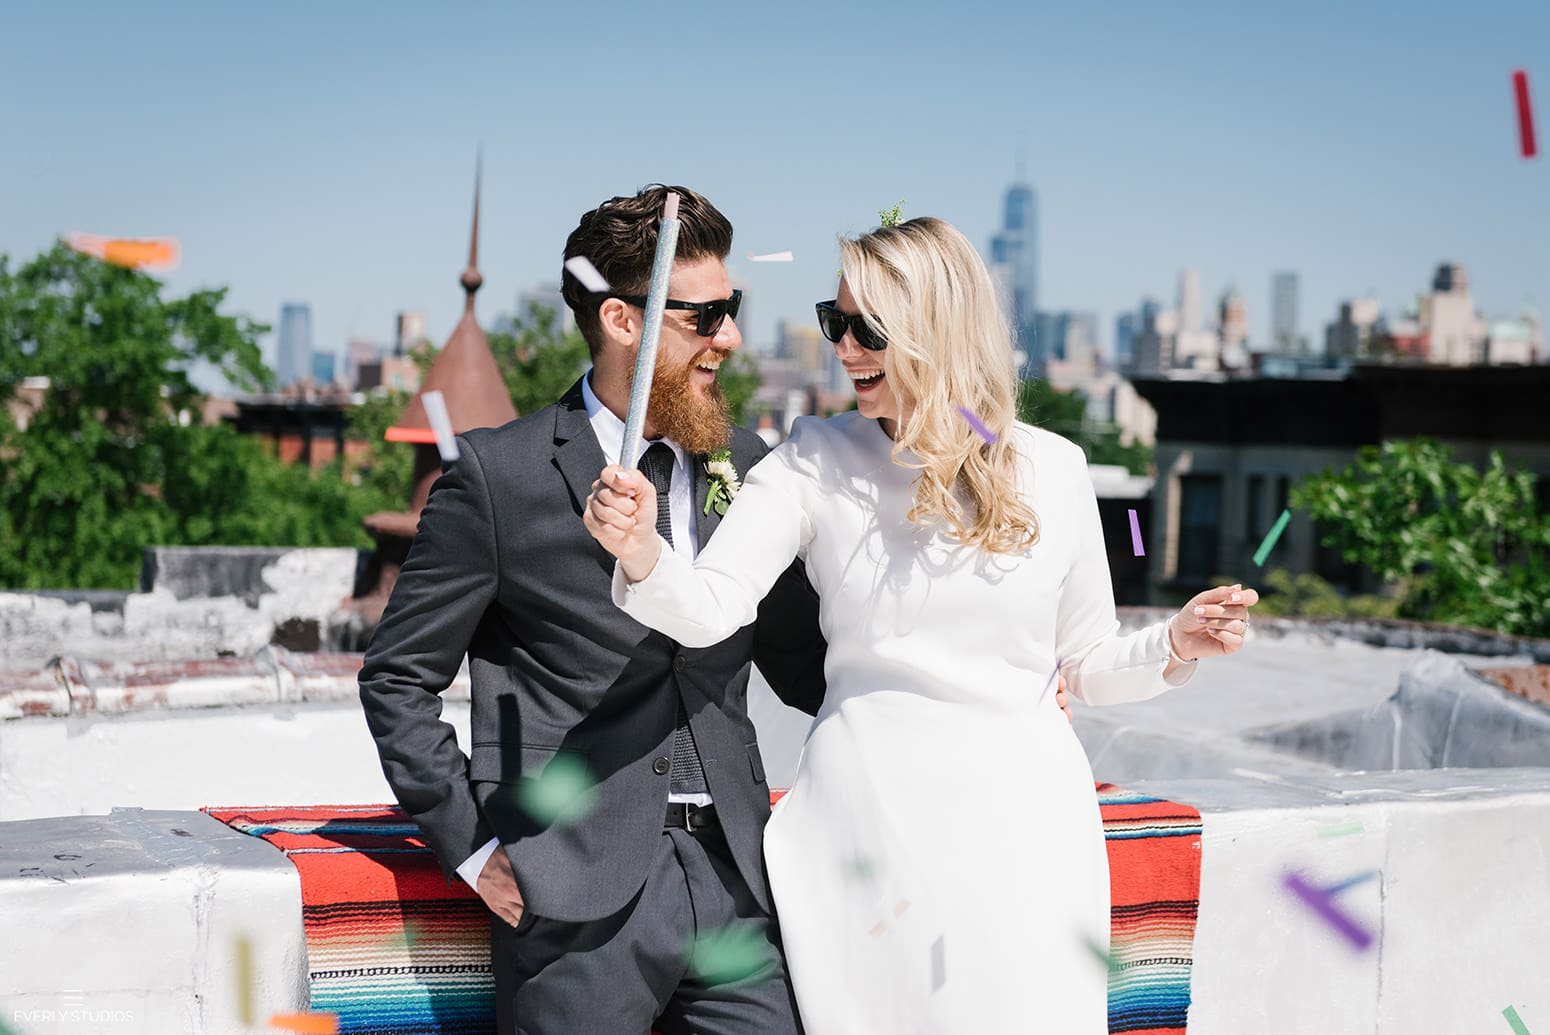 Guide: Getting Married In NYC